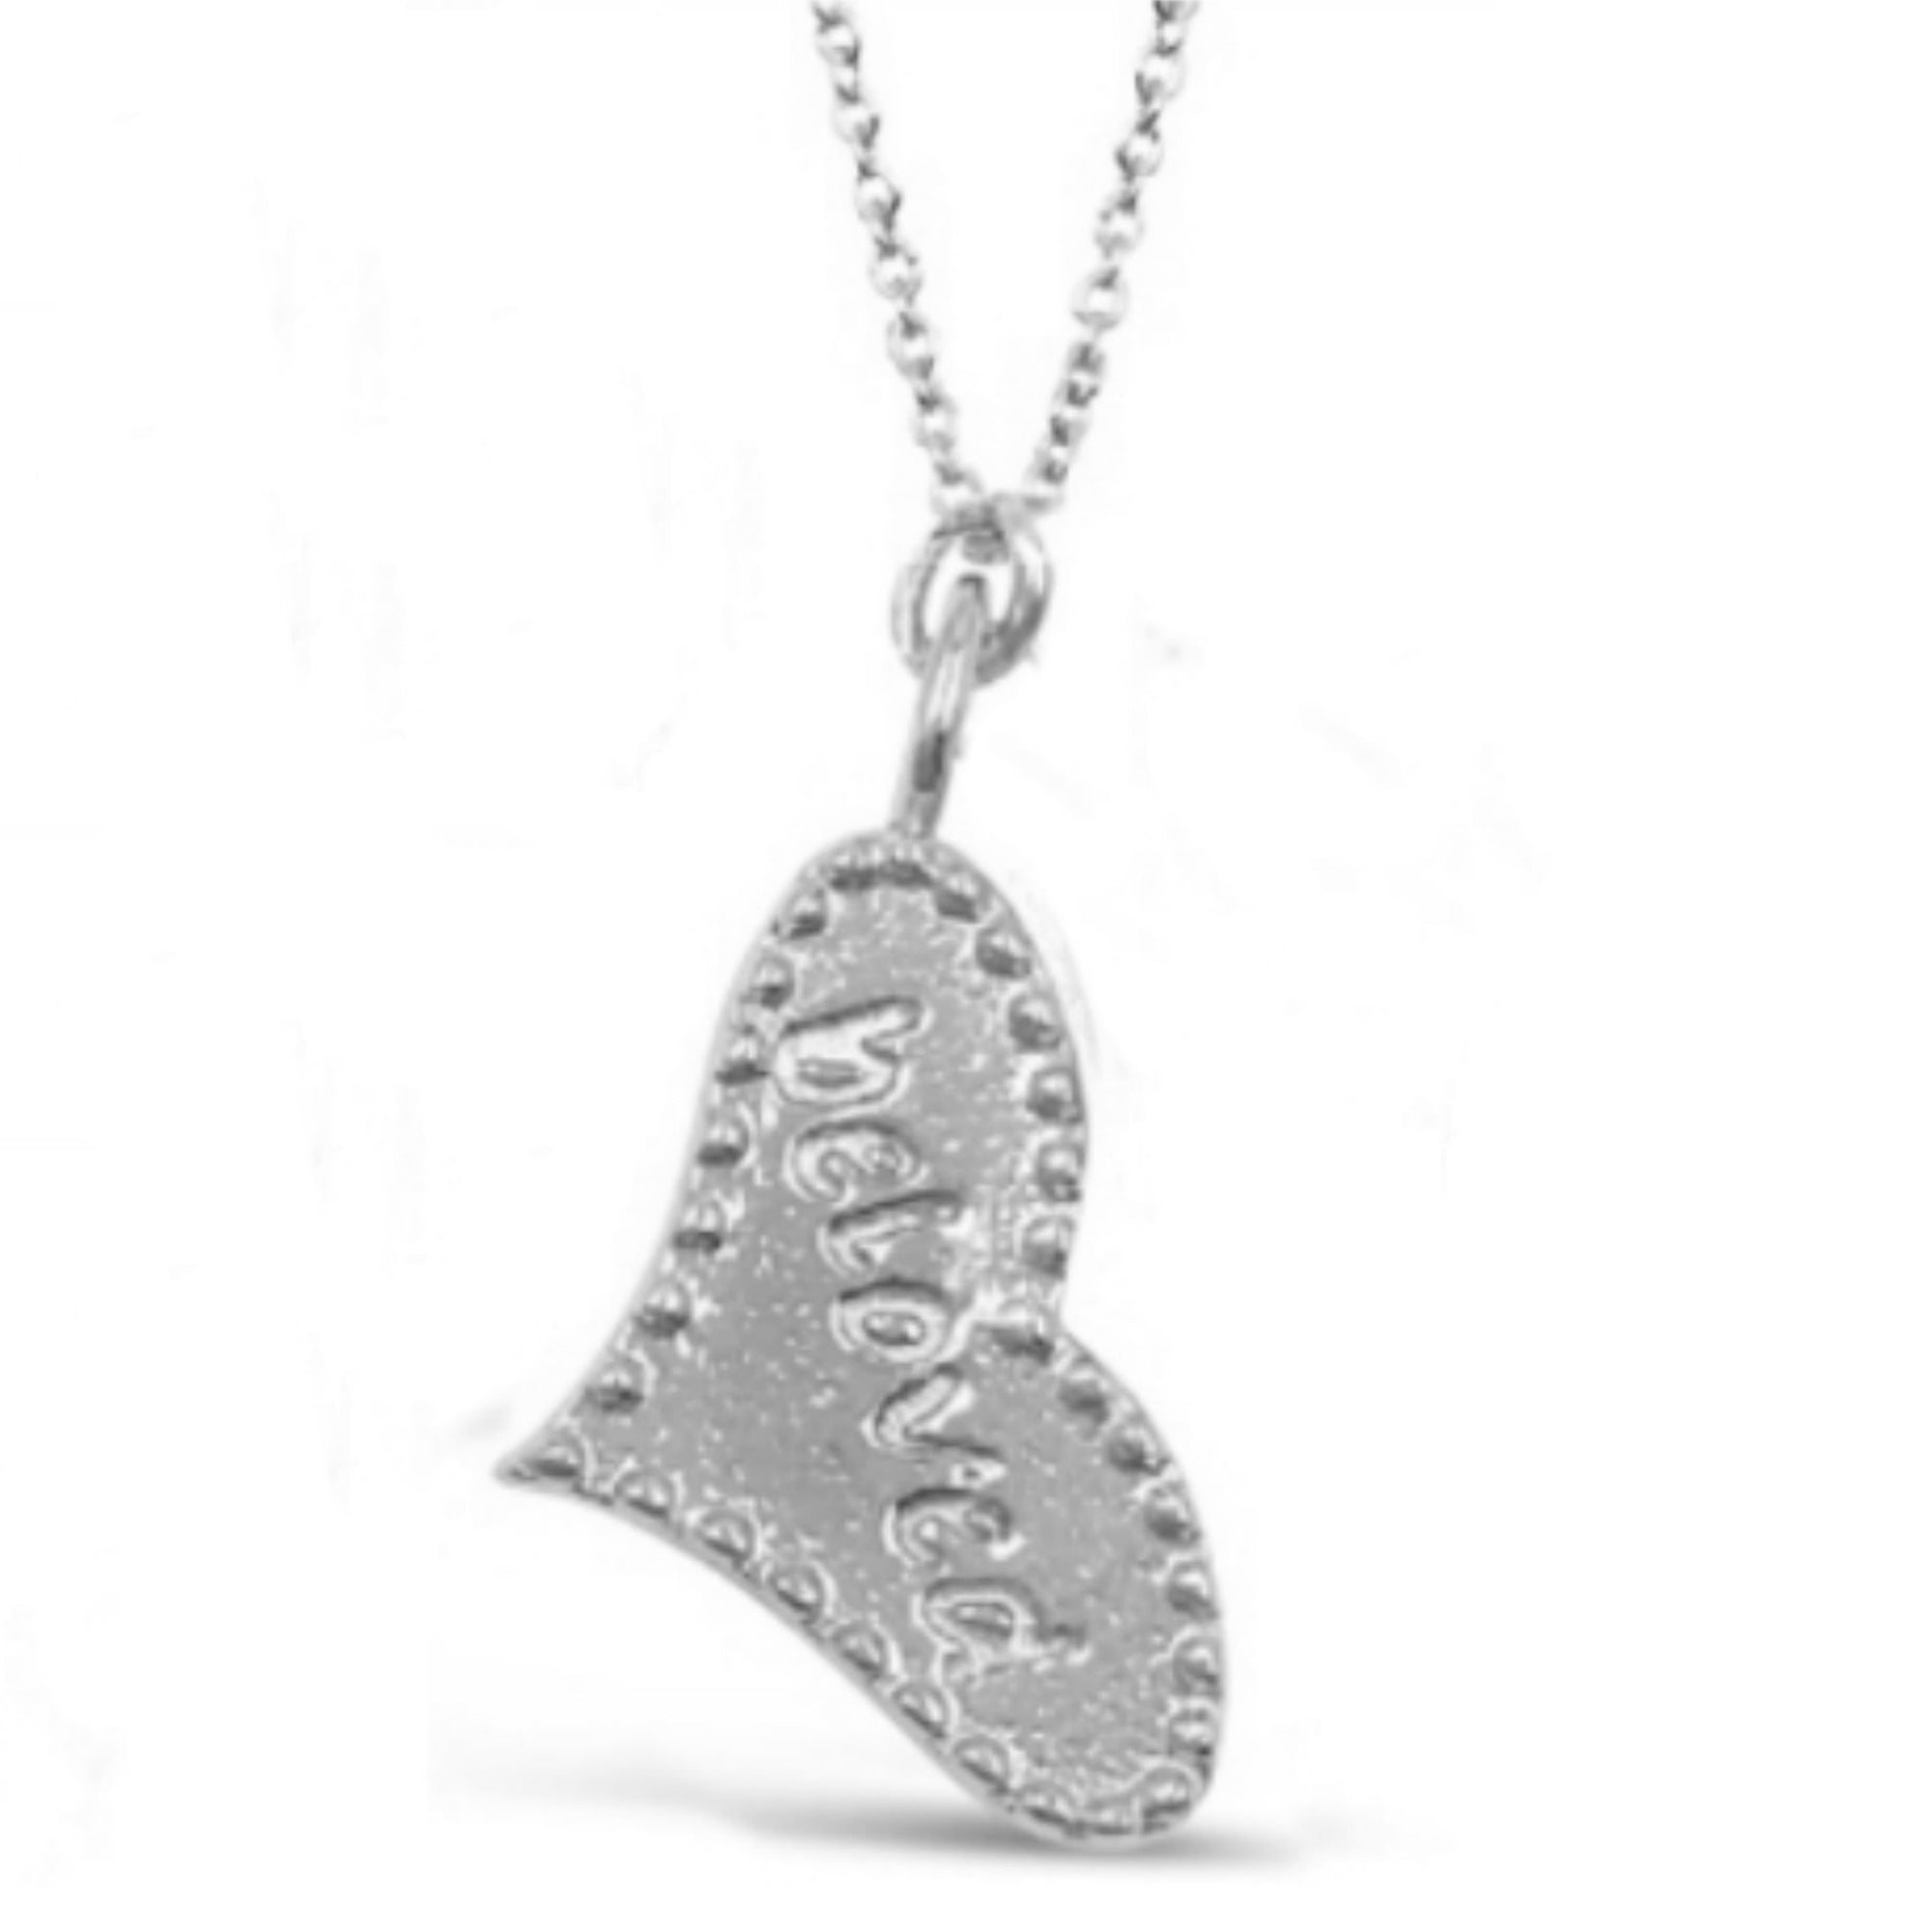 1dc2716c34 SOPHIA HEART NECKLACE   SOPHIA AND CHLOE BELOVED HEART NECKLACE ...